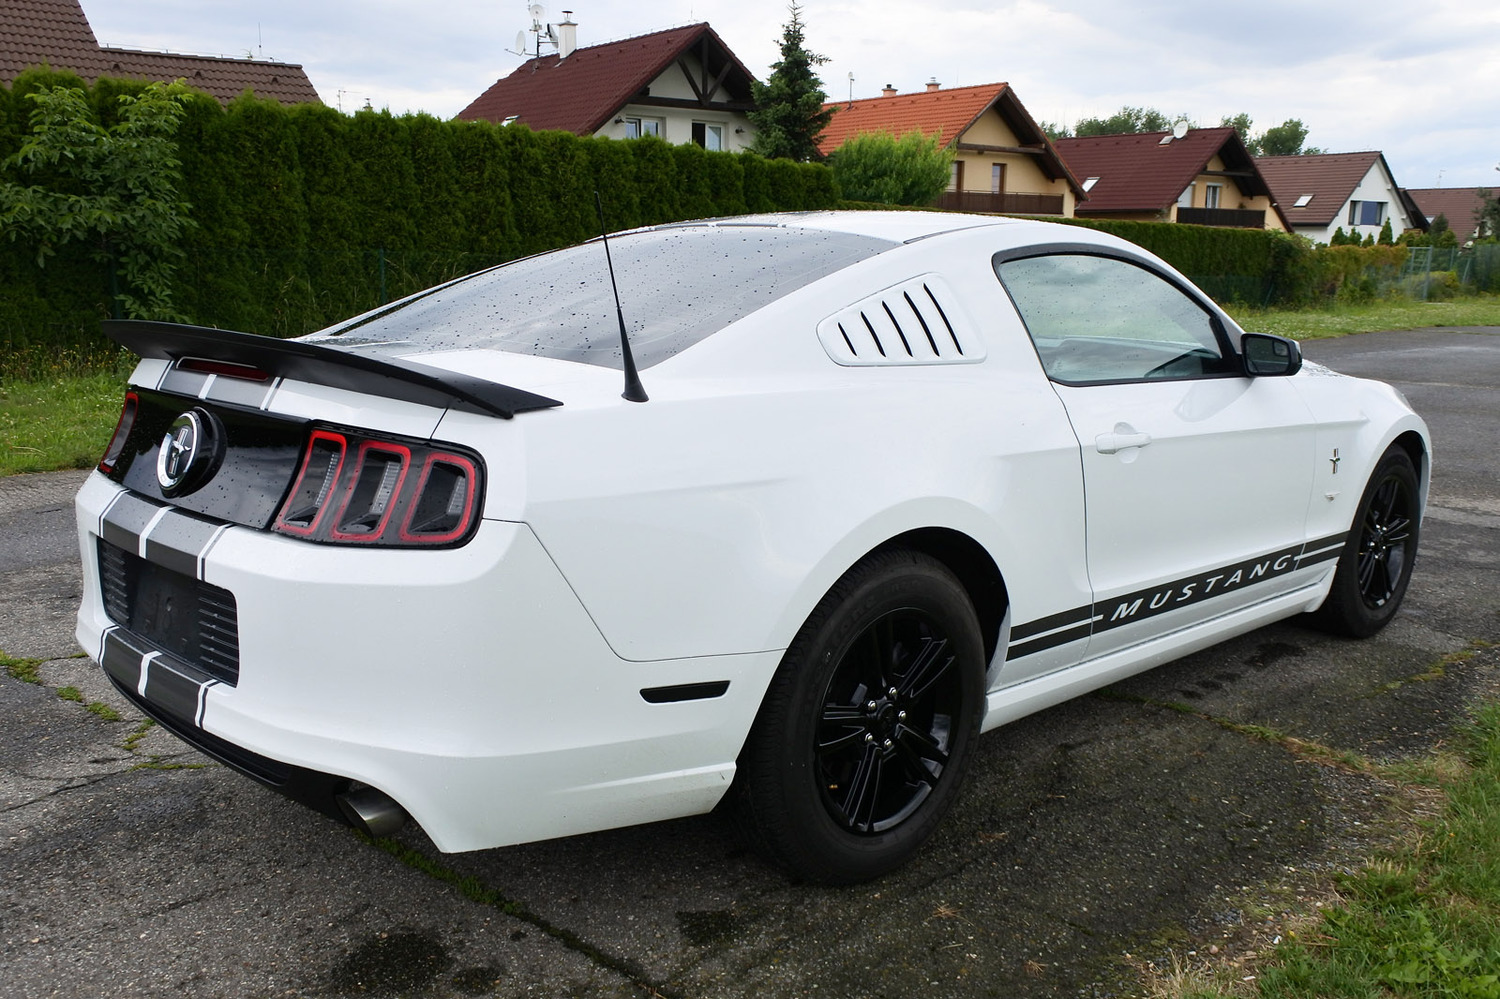 ford mustang 3 7 v6 2014 2014 na prodej inzer t inzerce aut autofrc. Black Bedroom Furniture Sets. Home Design Ideas